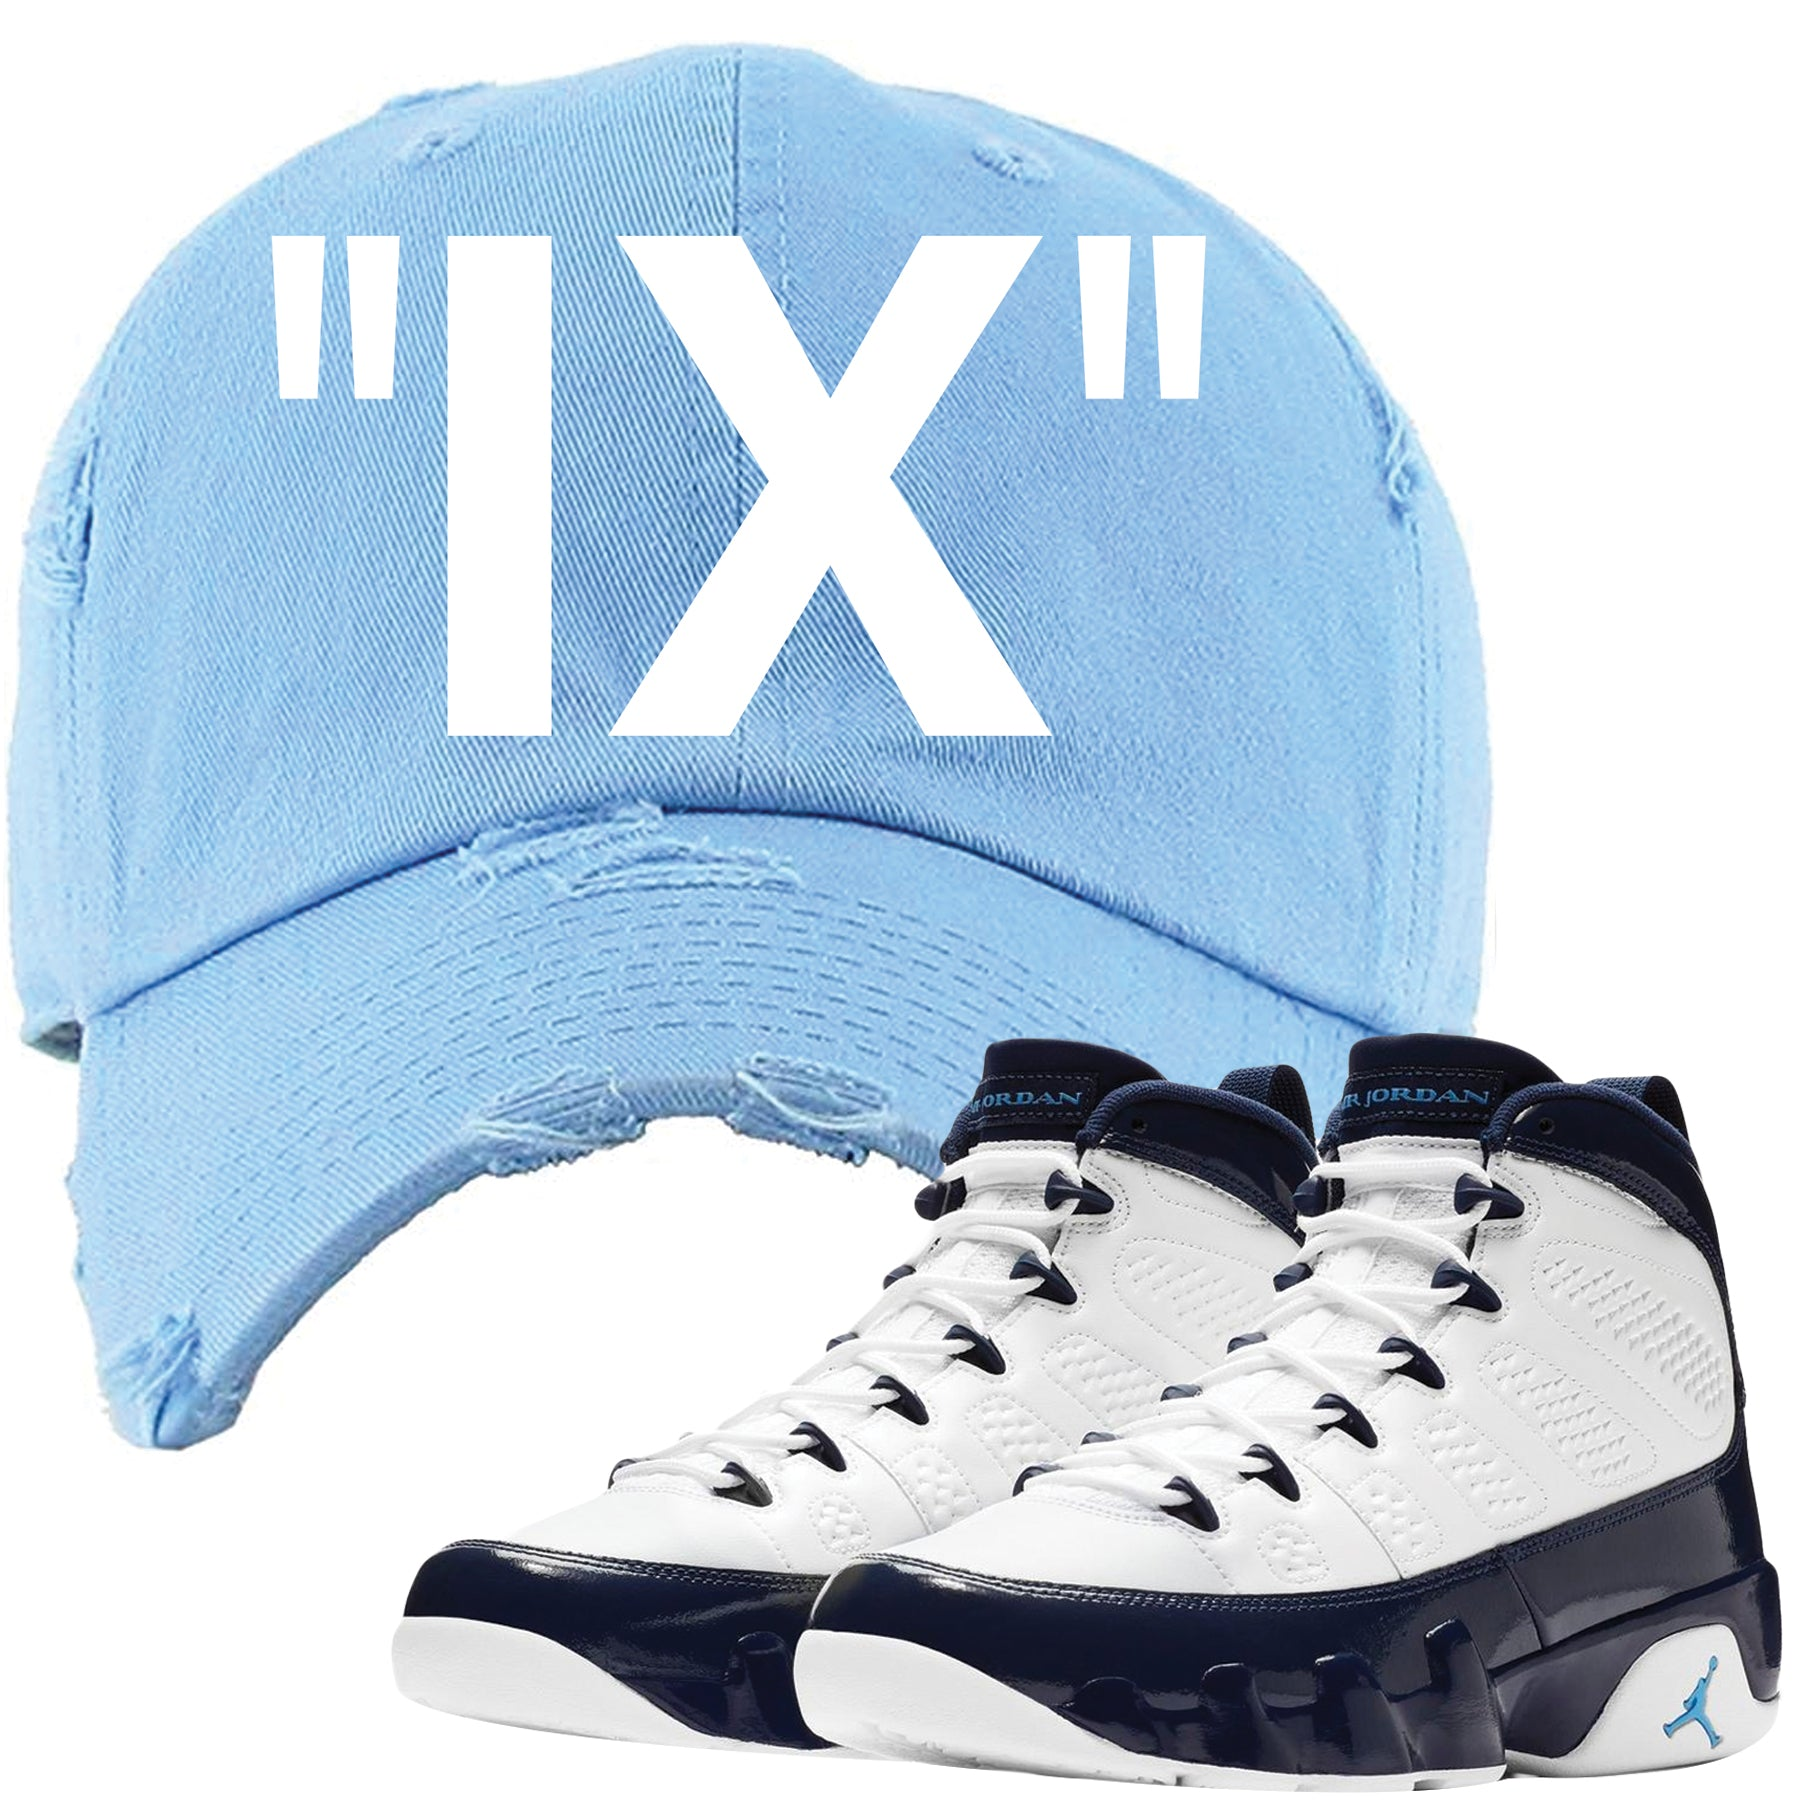 07900e0a9e7 Match your pair of Jordan 9 UNC Blue Pearl All Star sneakers with this Jordan  9